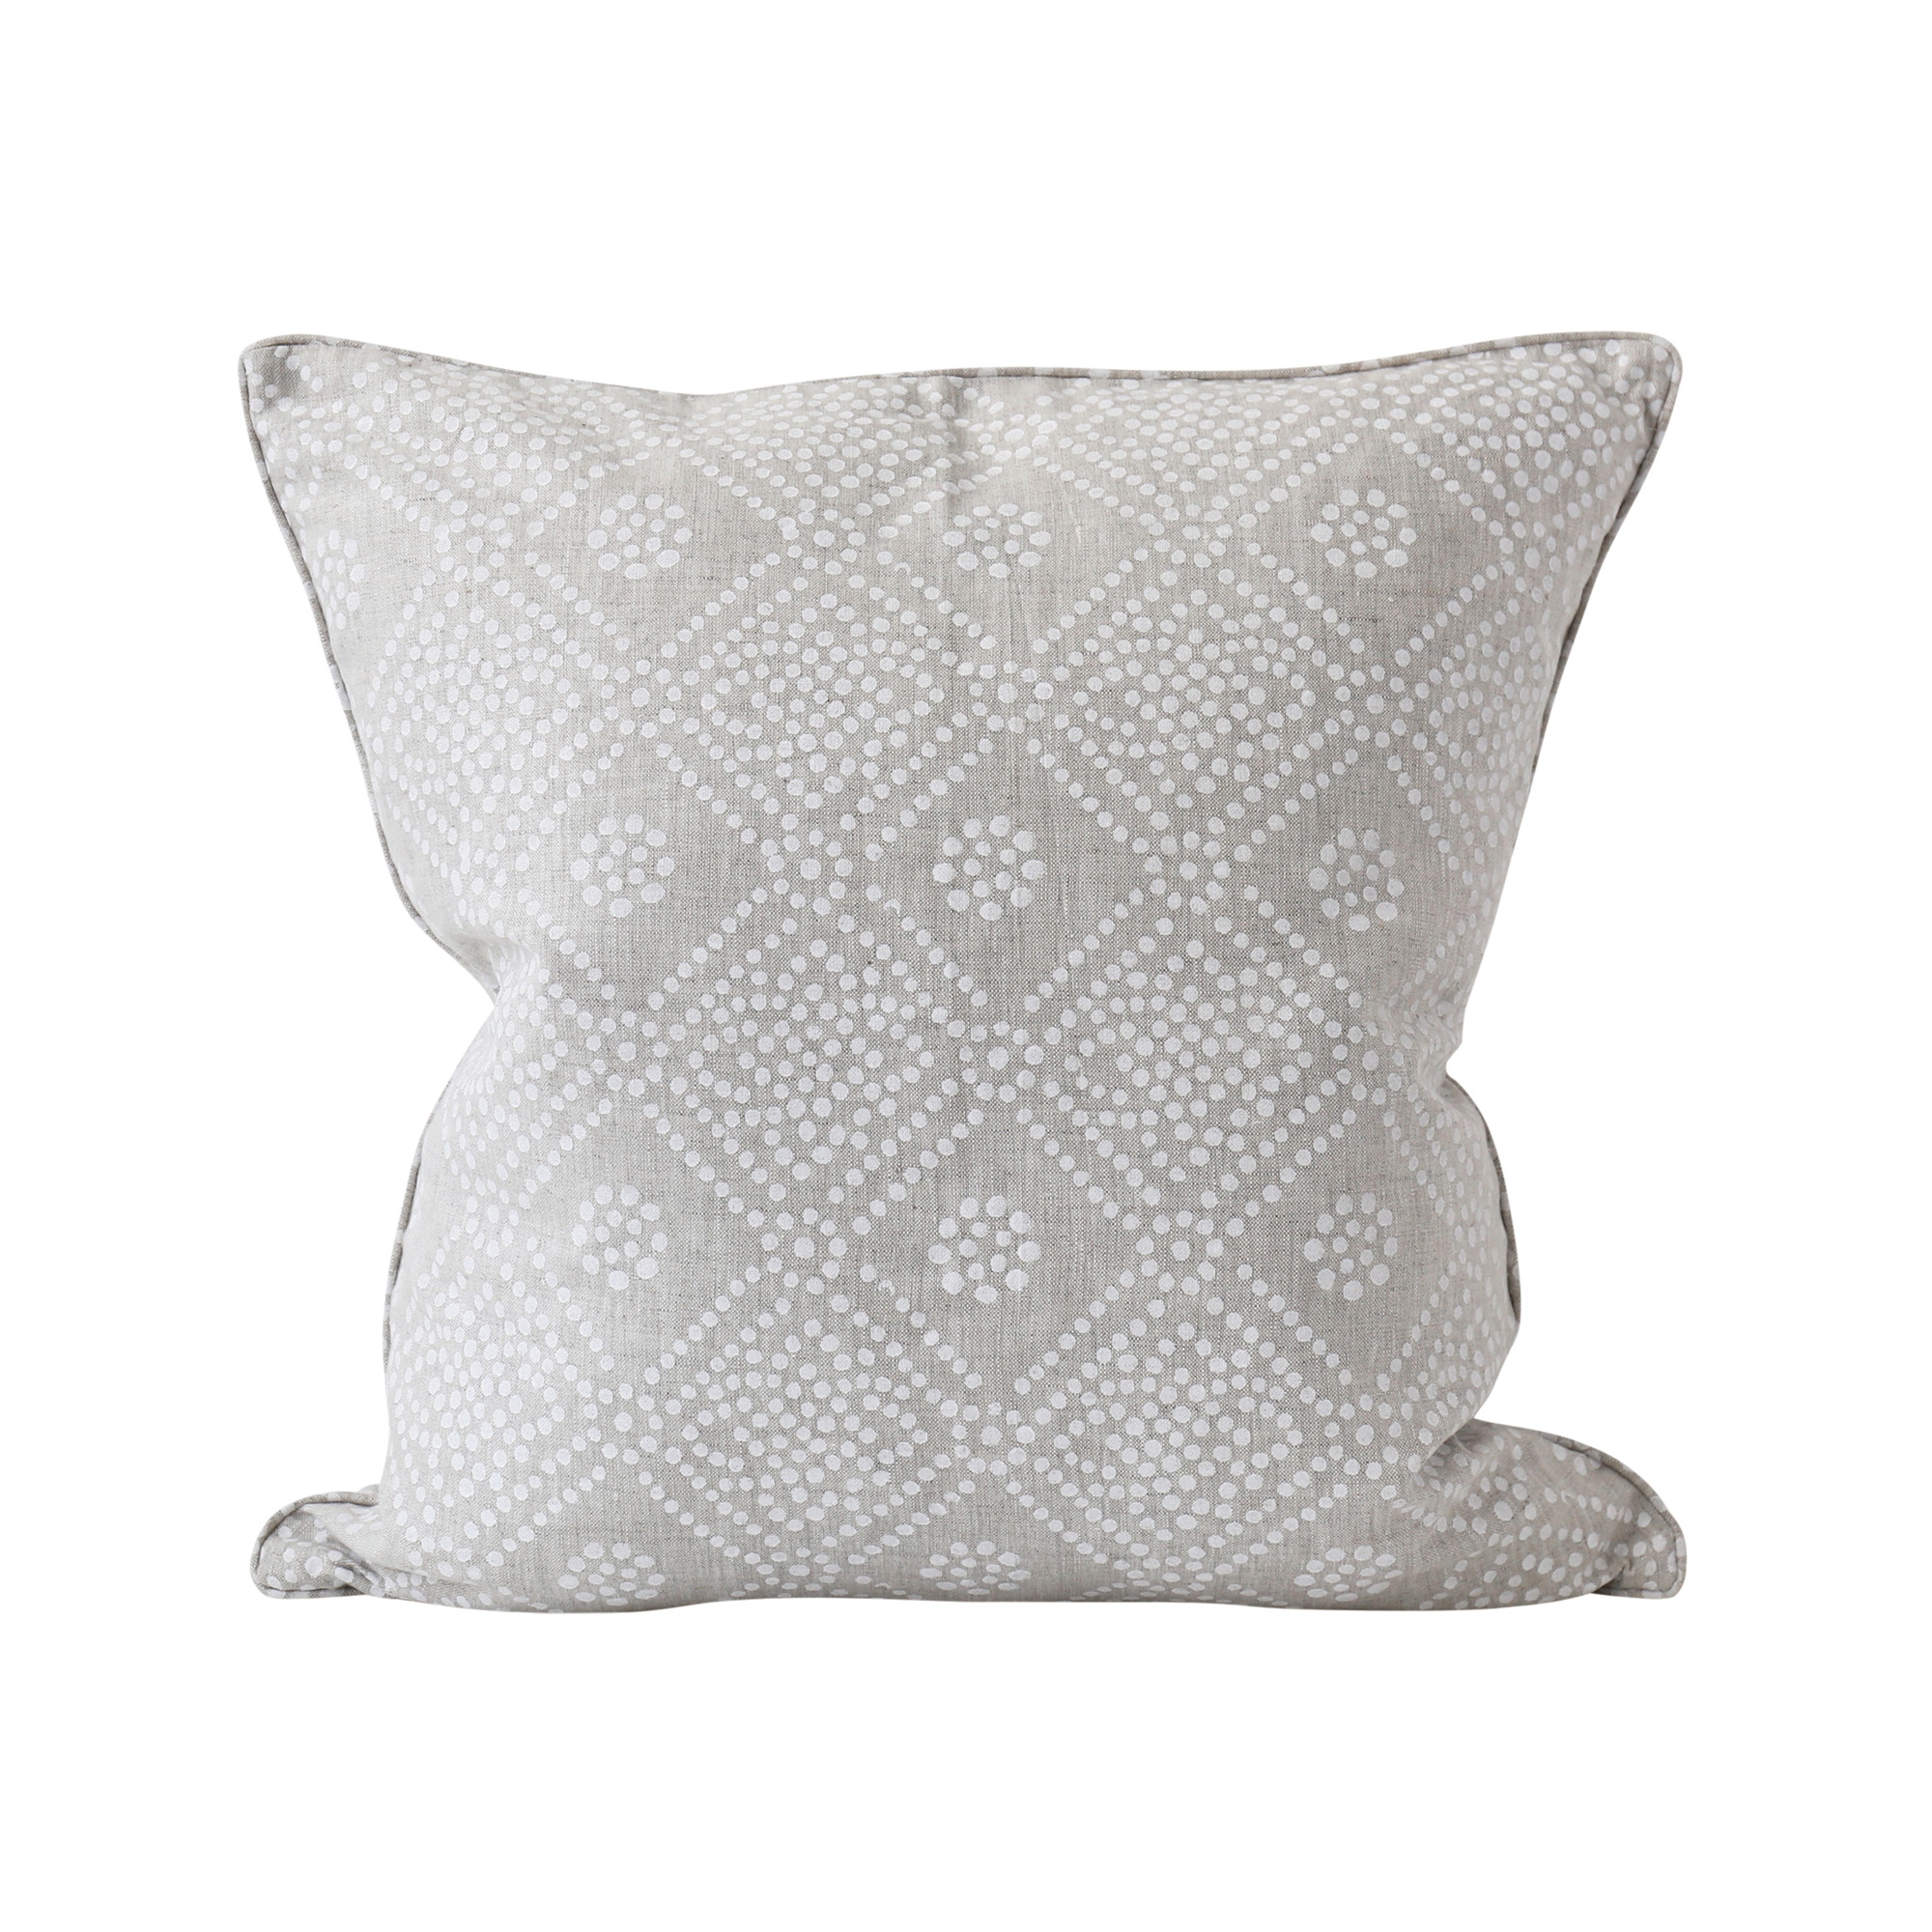 $50 Voucher towards a Coco Republic Cushion